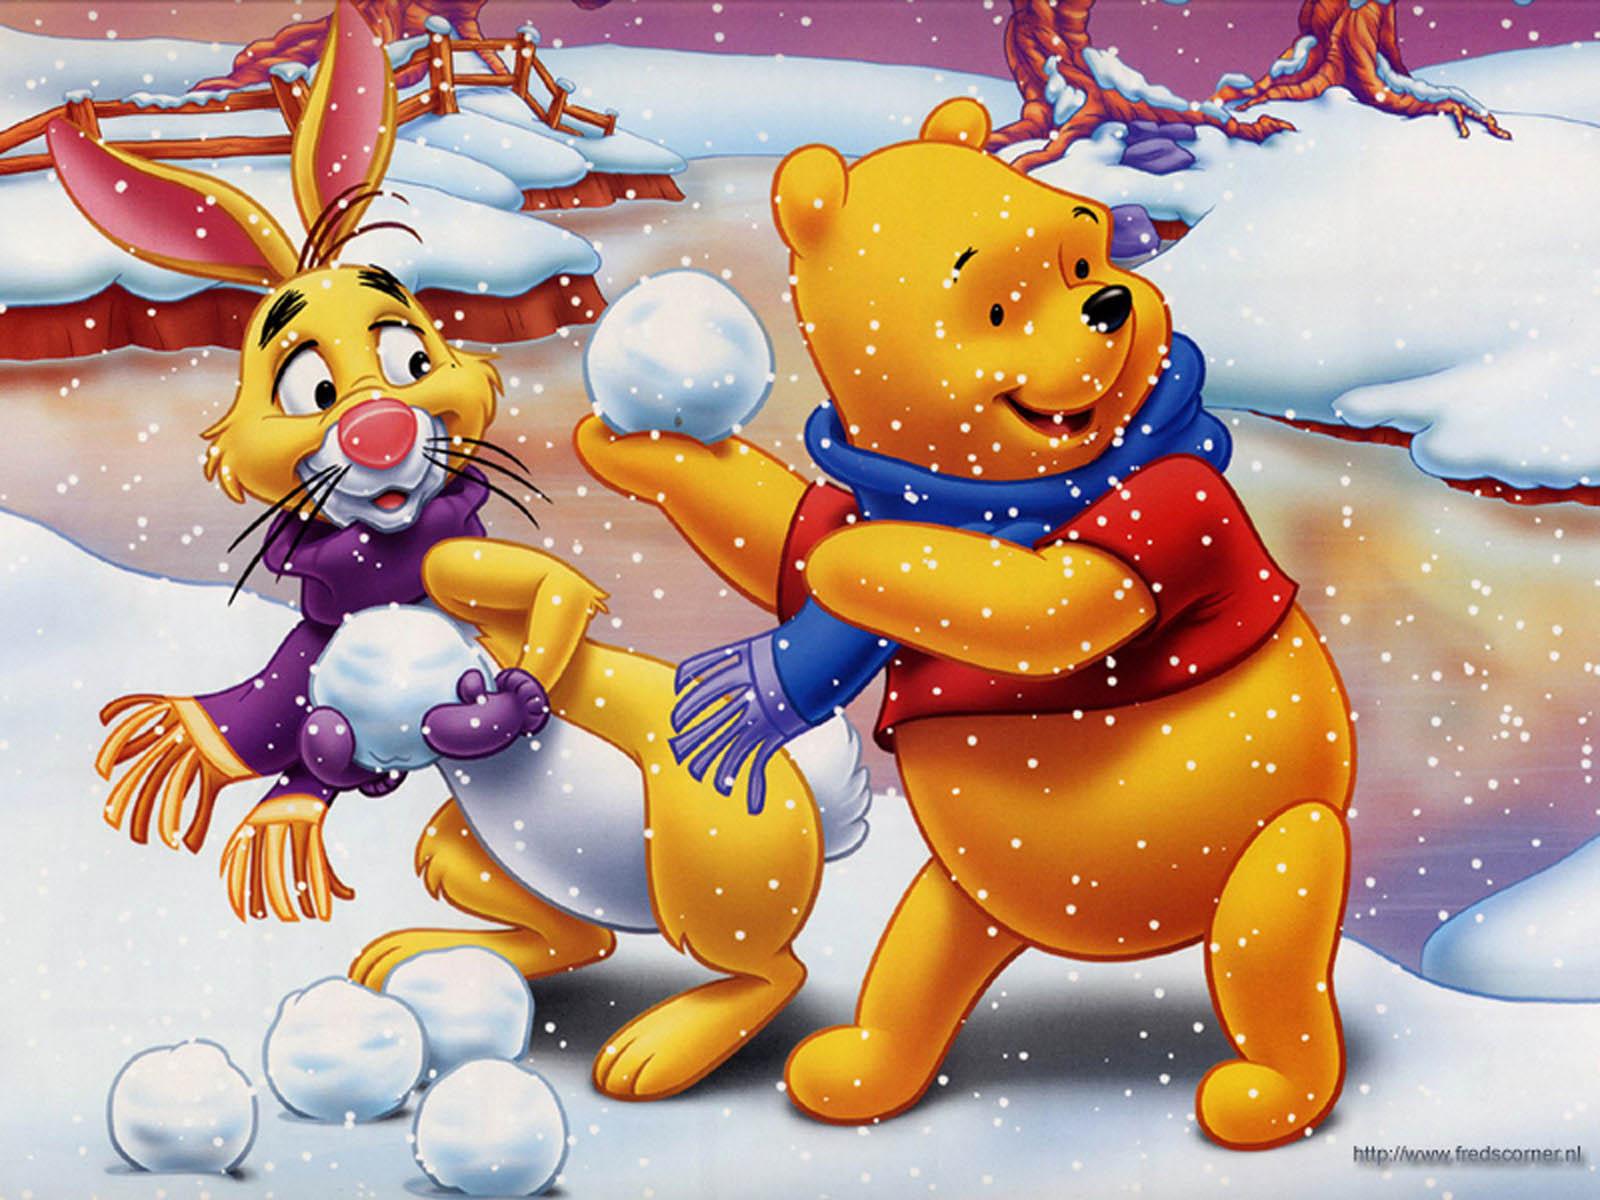 Winnie the pooh beautiful hd wallpapers all hd wallpapers winnie the pooh 8 voltagebd Gallery